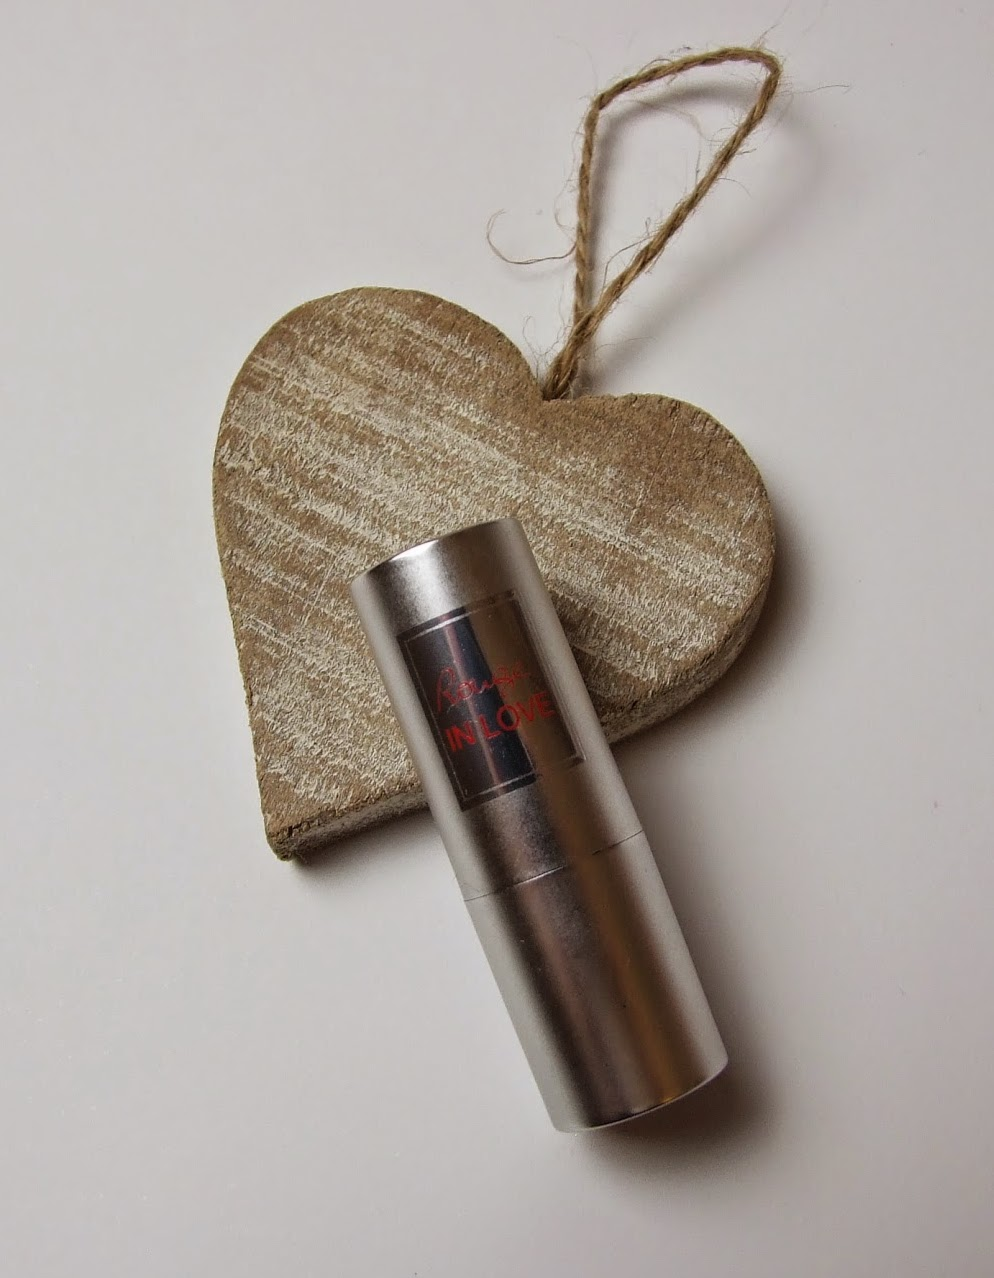 Lancome in love lipstick 379N swatch beauty blog review